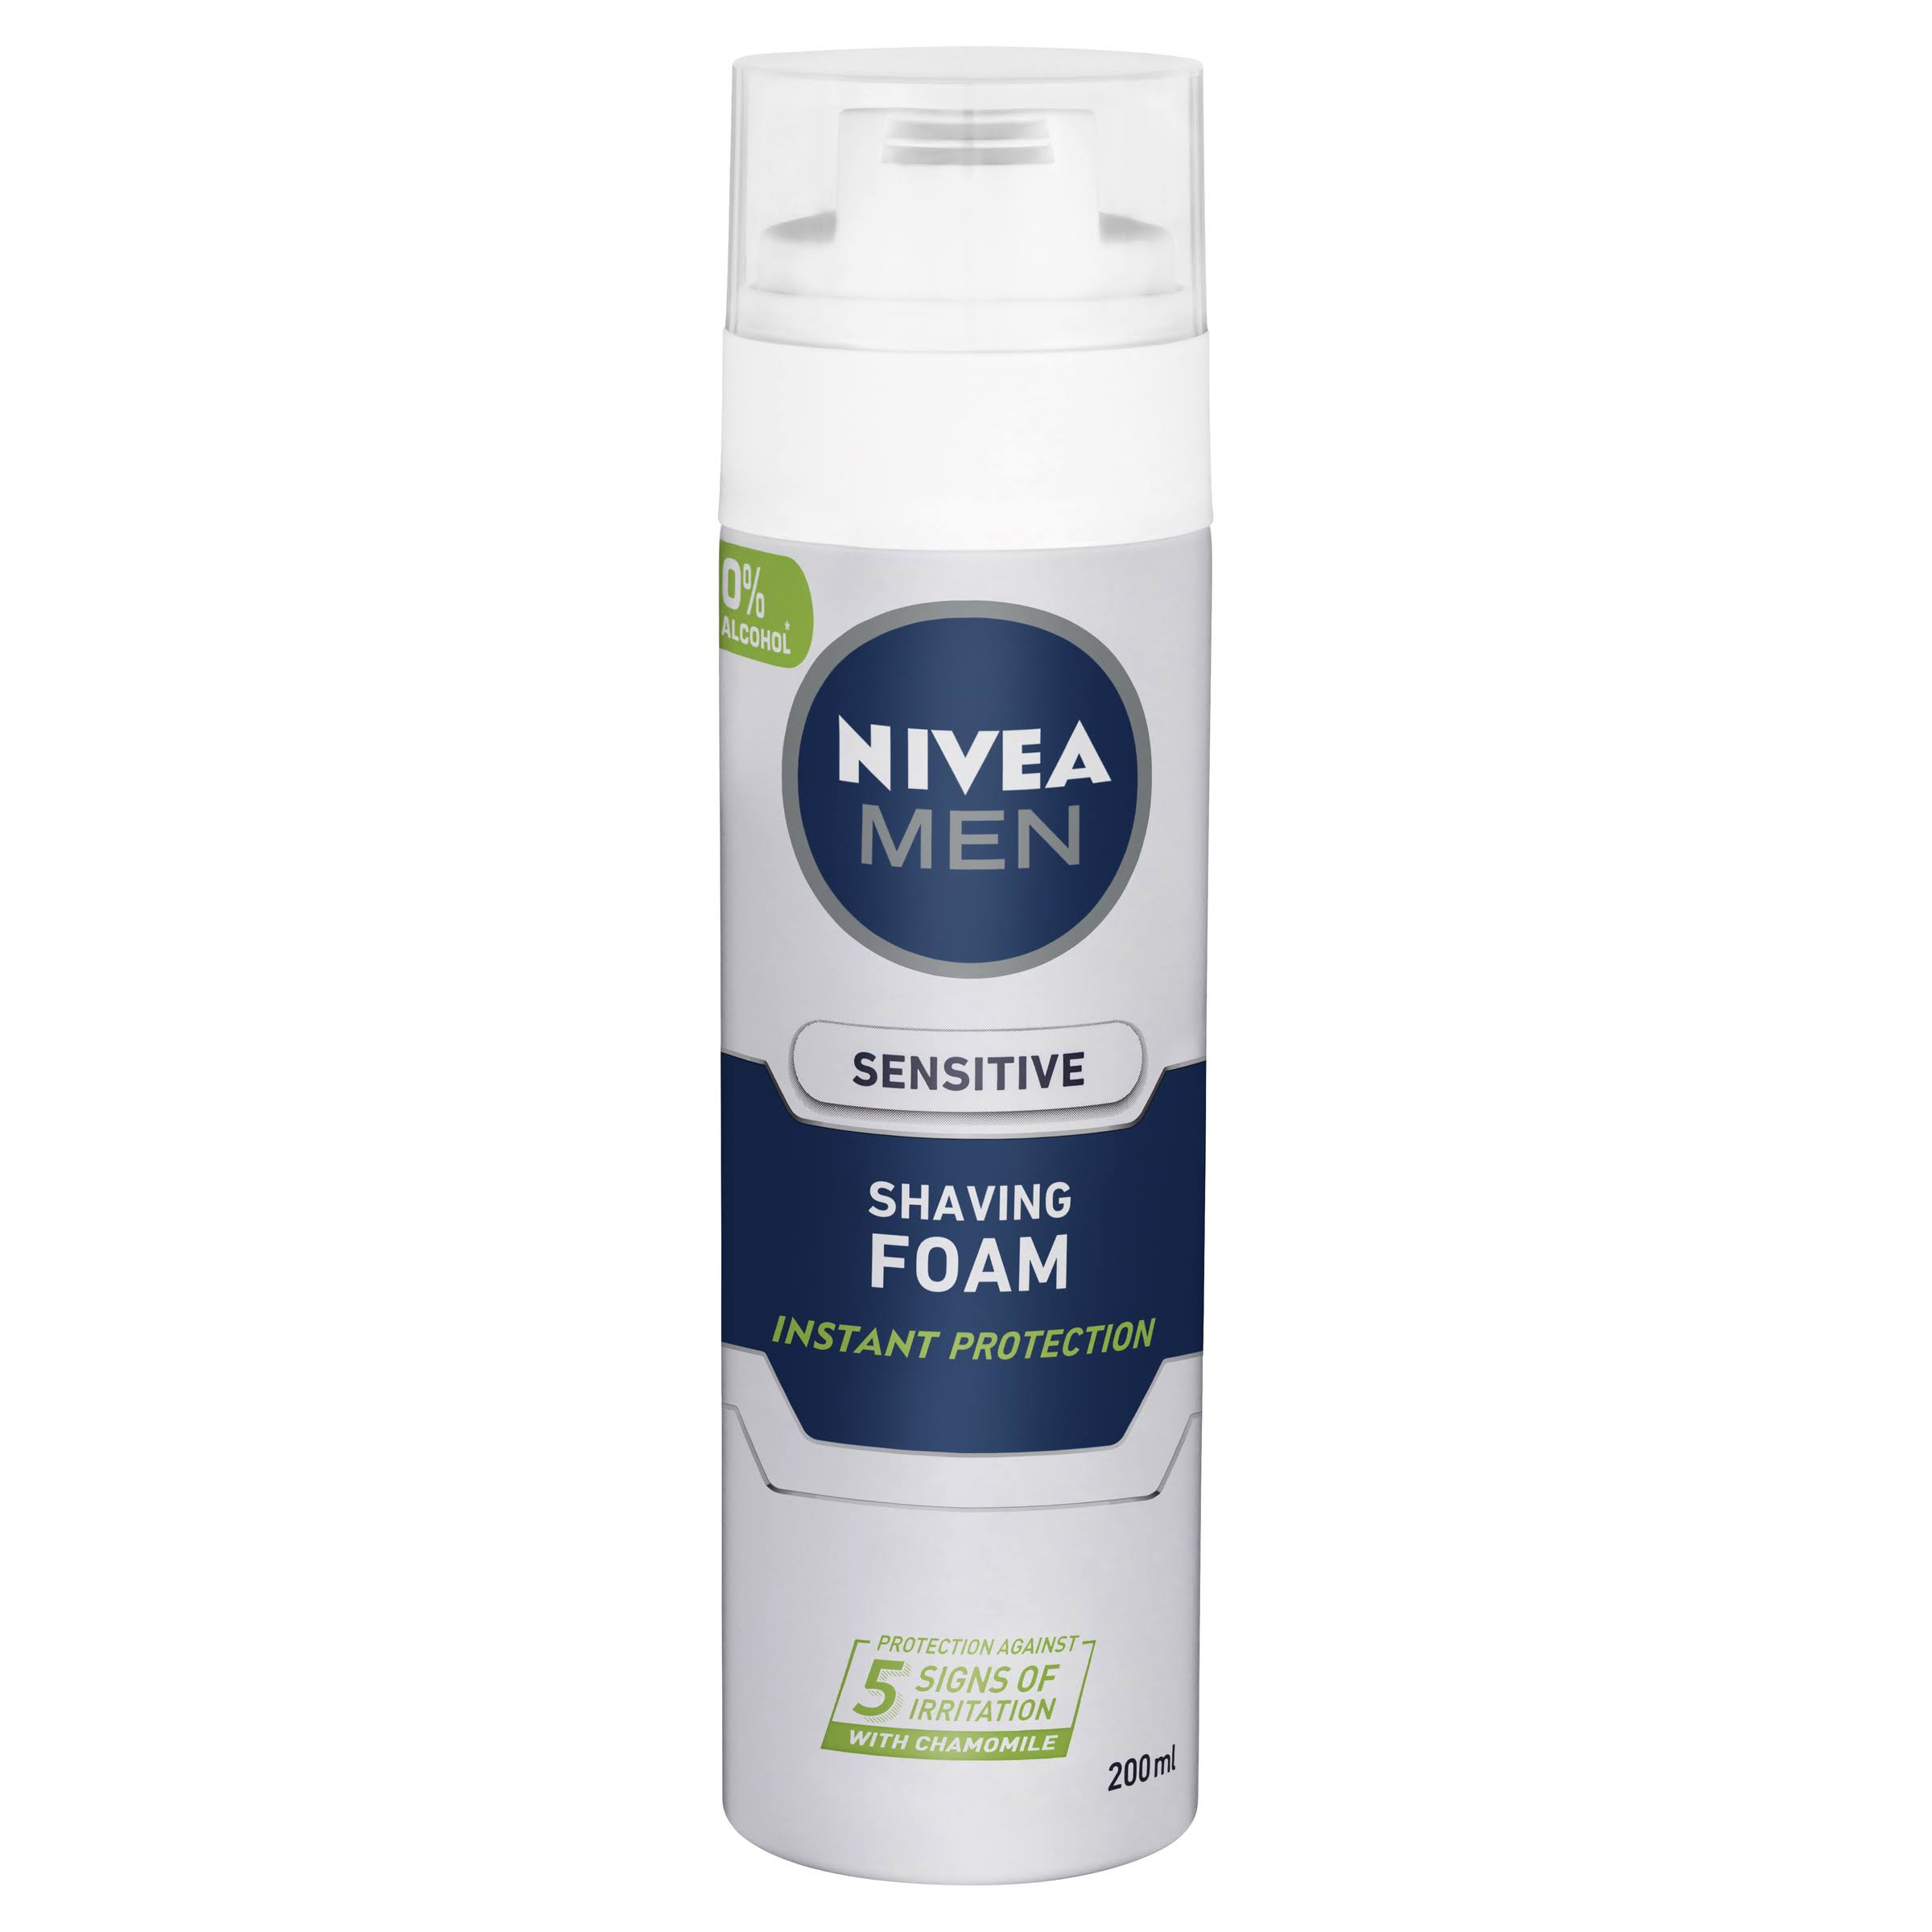 Nivea Men's Sensitive Shaving Foam - 200ml